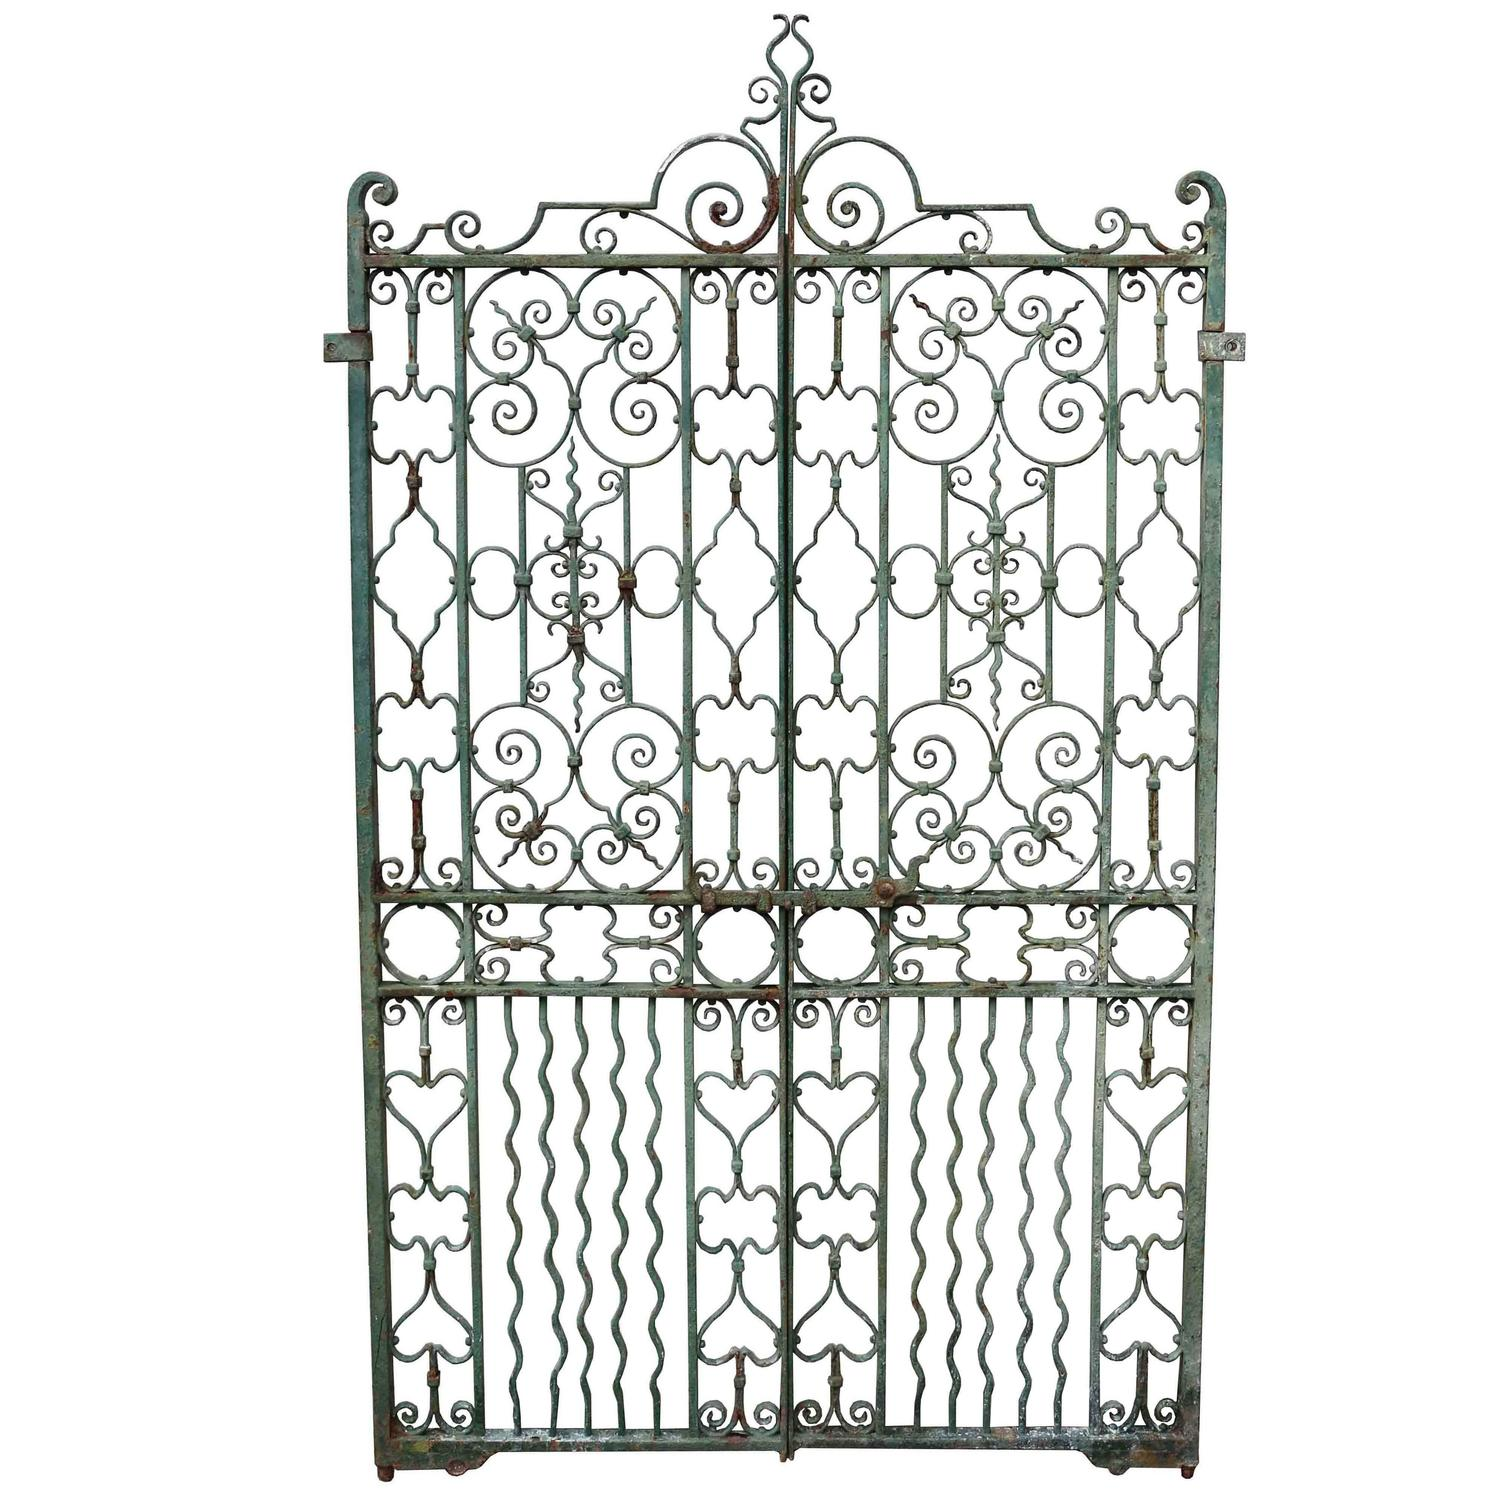 Pair Of Antique English Wrought Iron Pedestrian Gates For